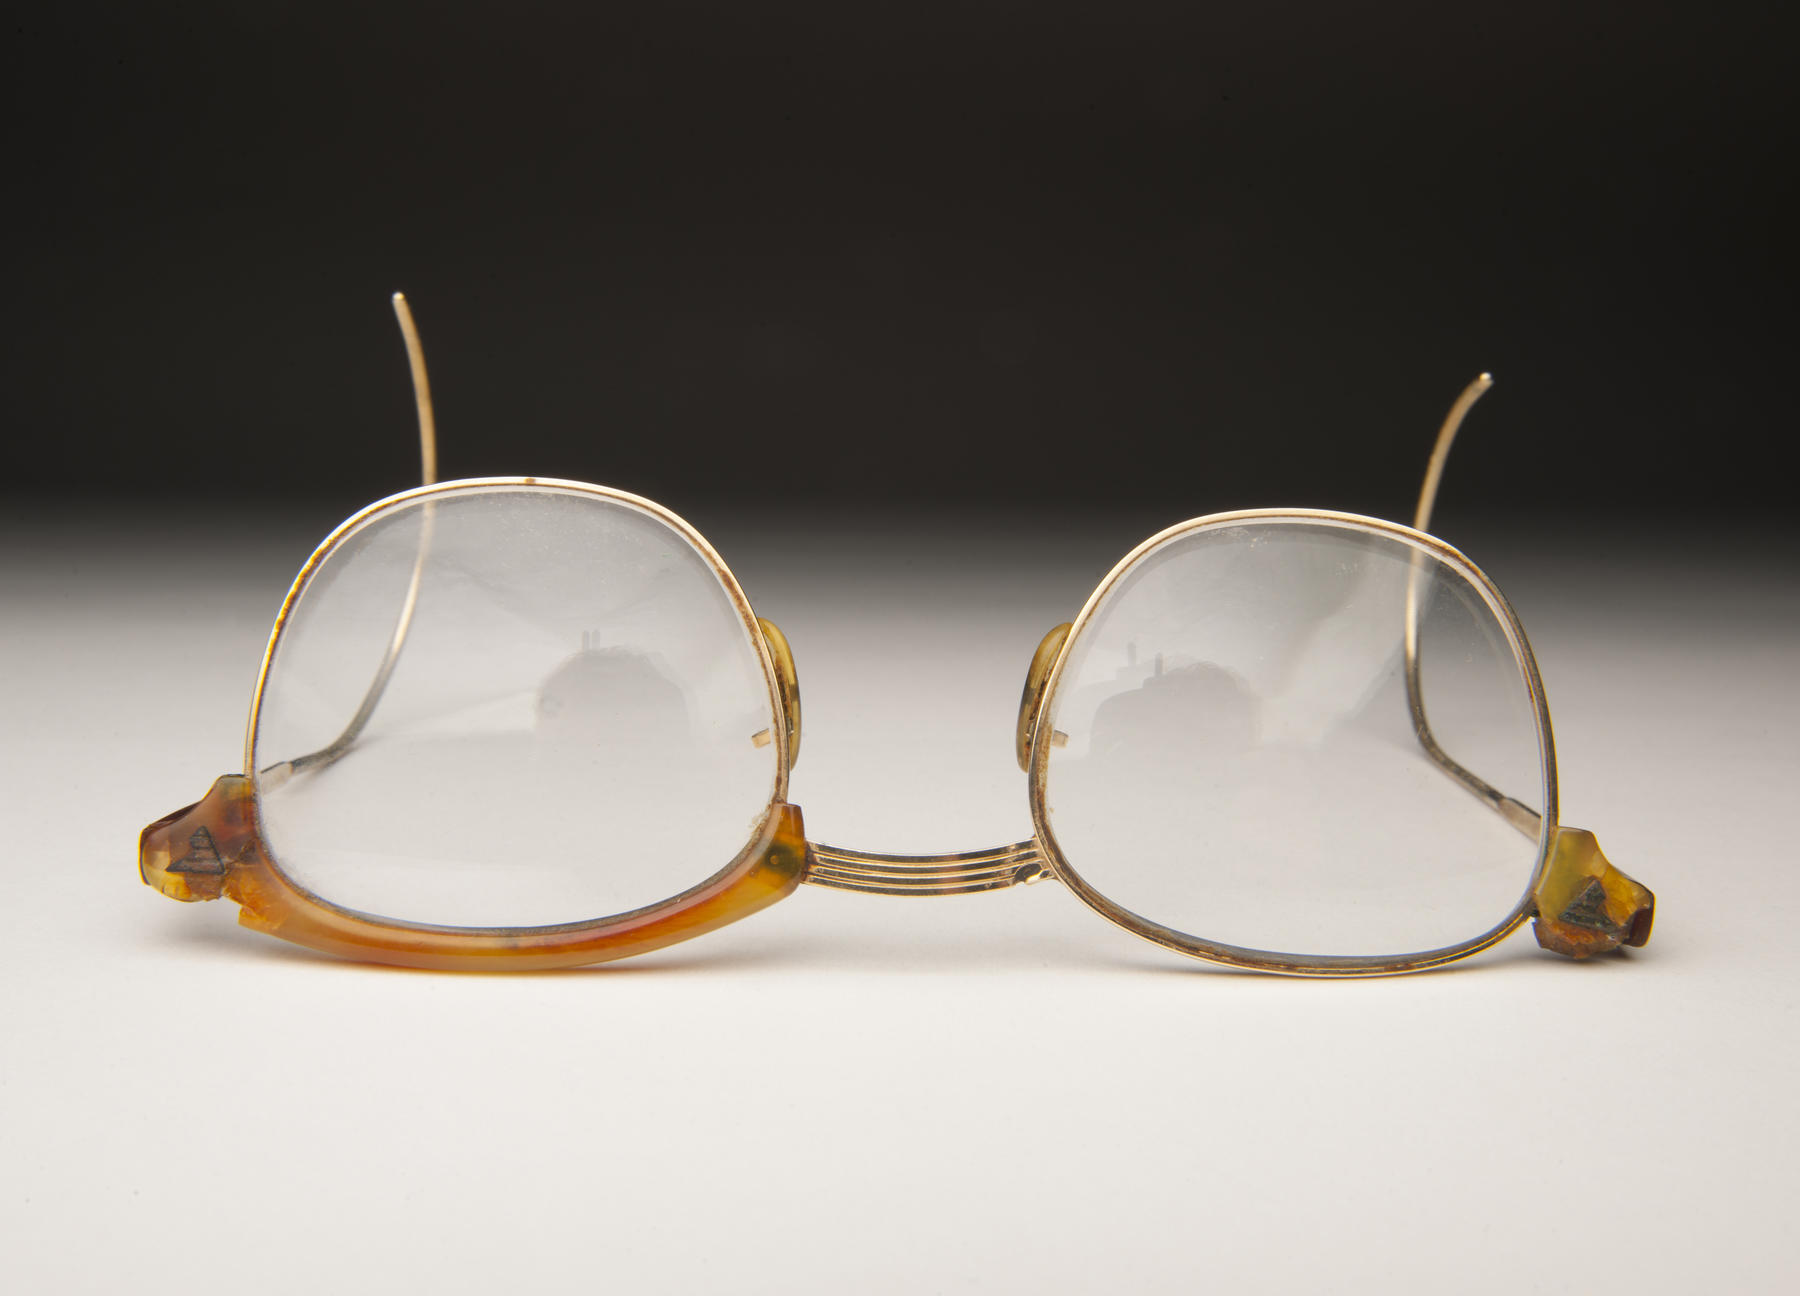 Frank Umont's glasses were donated to the National Baseball Hall of Fame and Museum by his daughter, Cathy Glennon. B-183.91 (Milo Stewart, Jr. / National Baseball Hall of Fame)